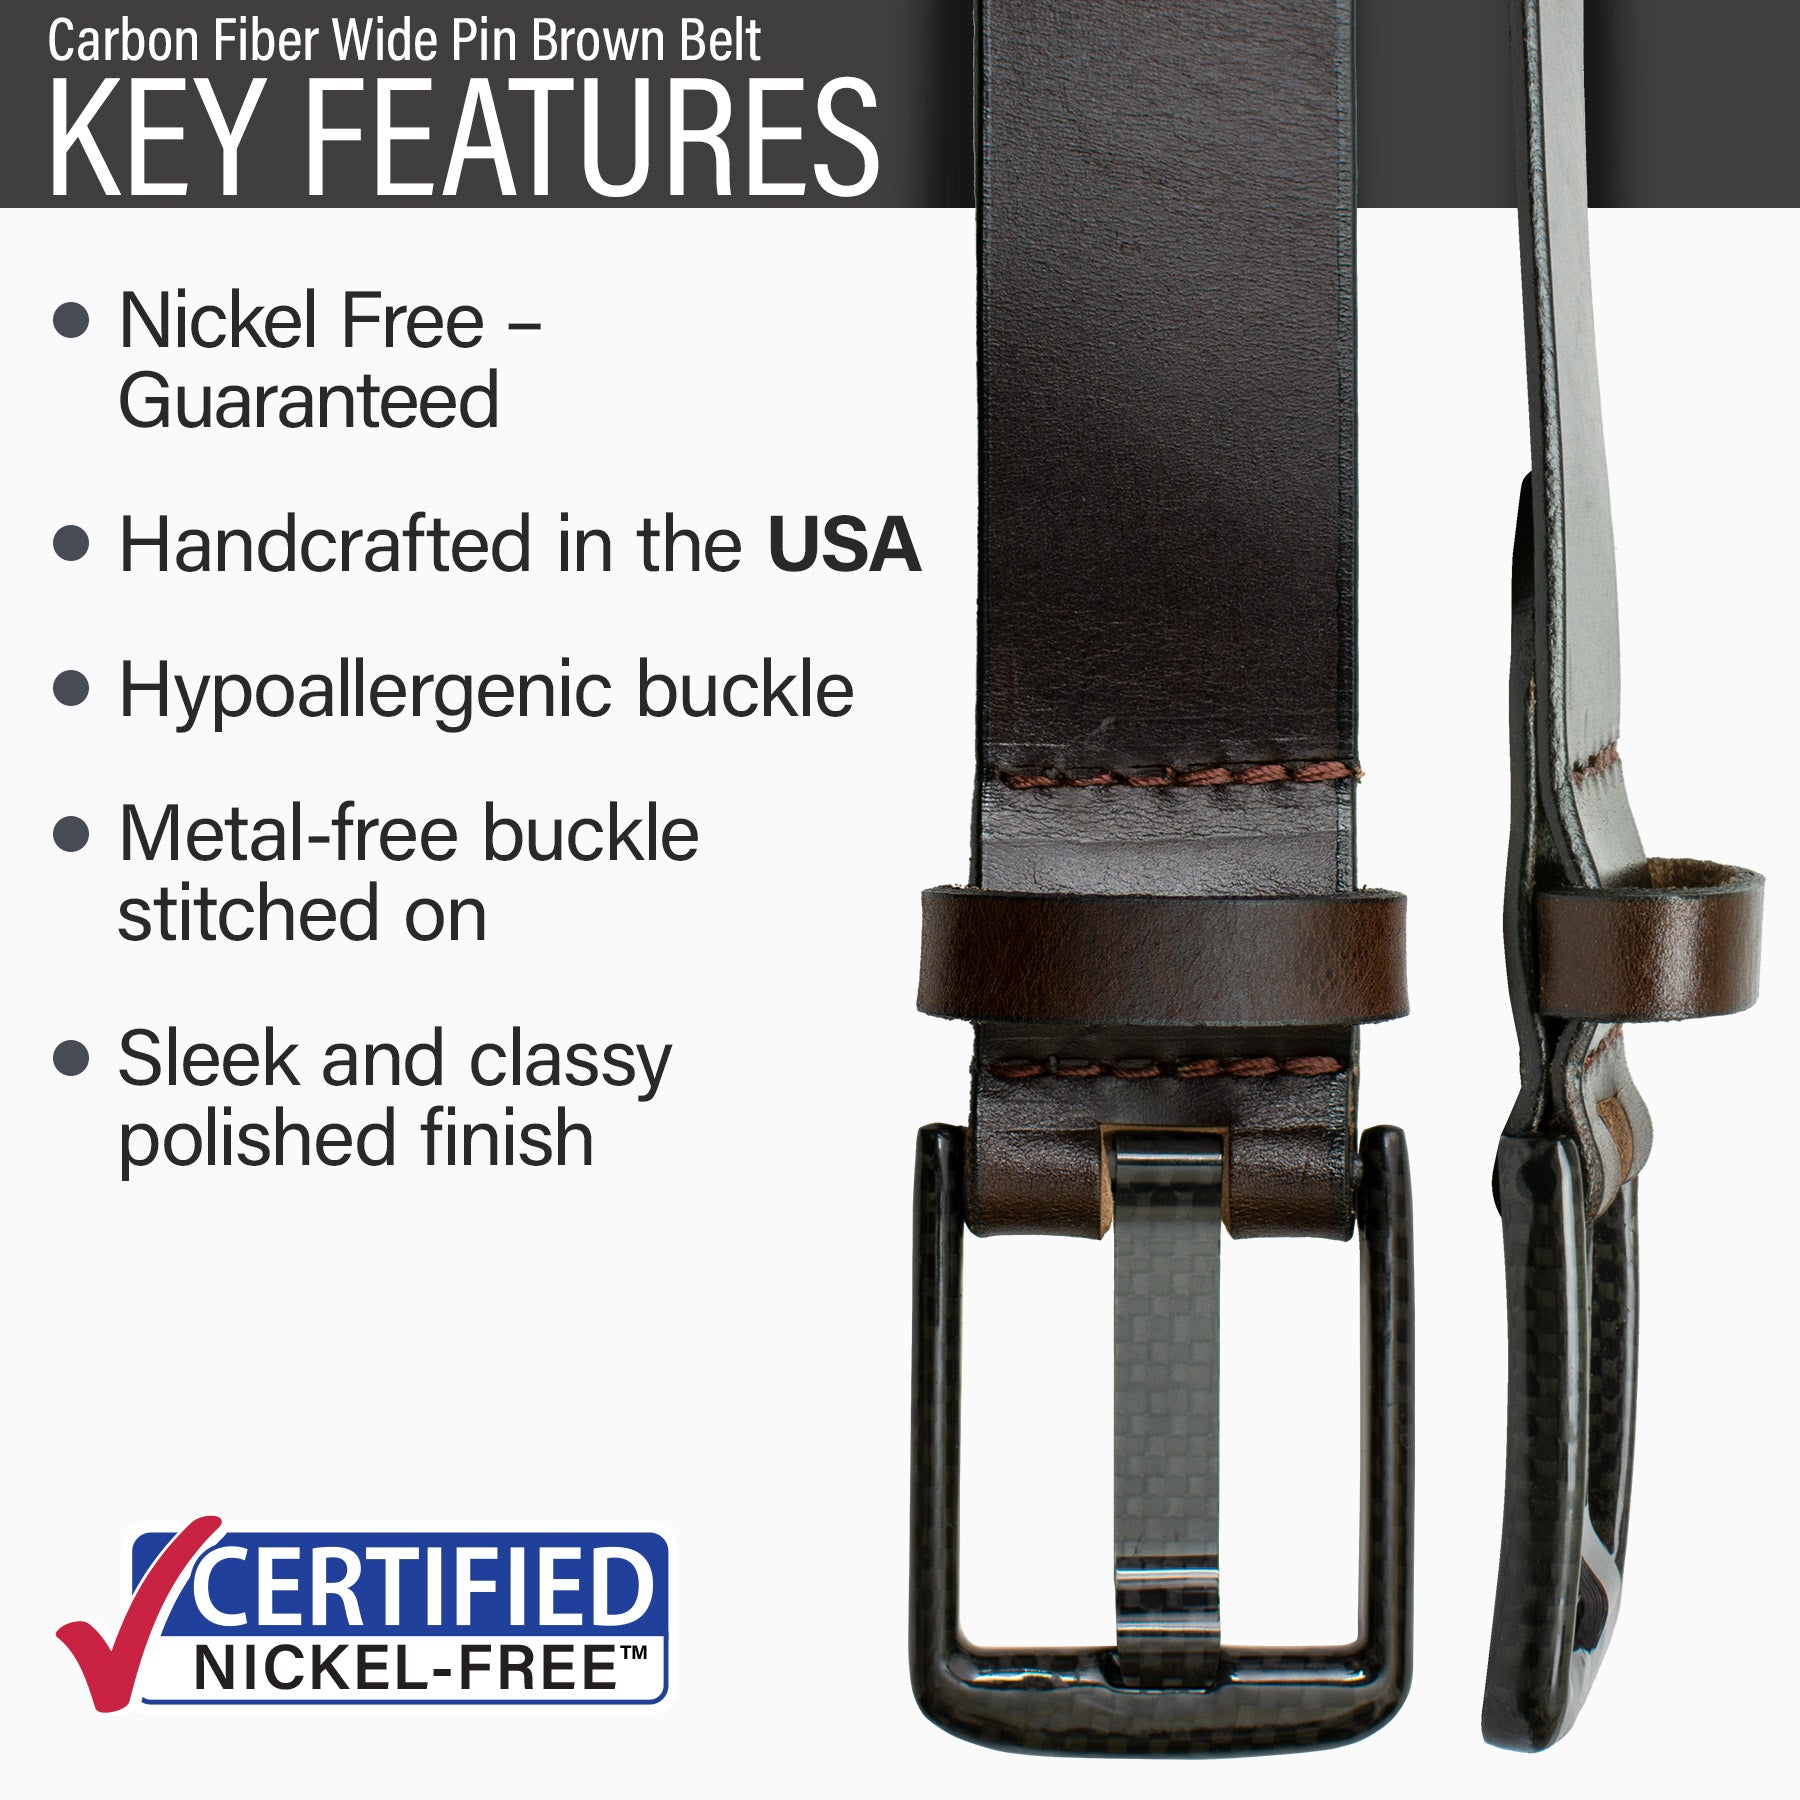 Key features of Carbon Fiber Wide Pin Nickel Free Brown Leather Belt | Hypoallergenic buckle, made in the USA, stitched on nickel-free buckle, metal-free carbon fiber buckle, polished finish